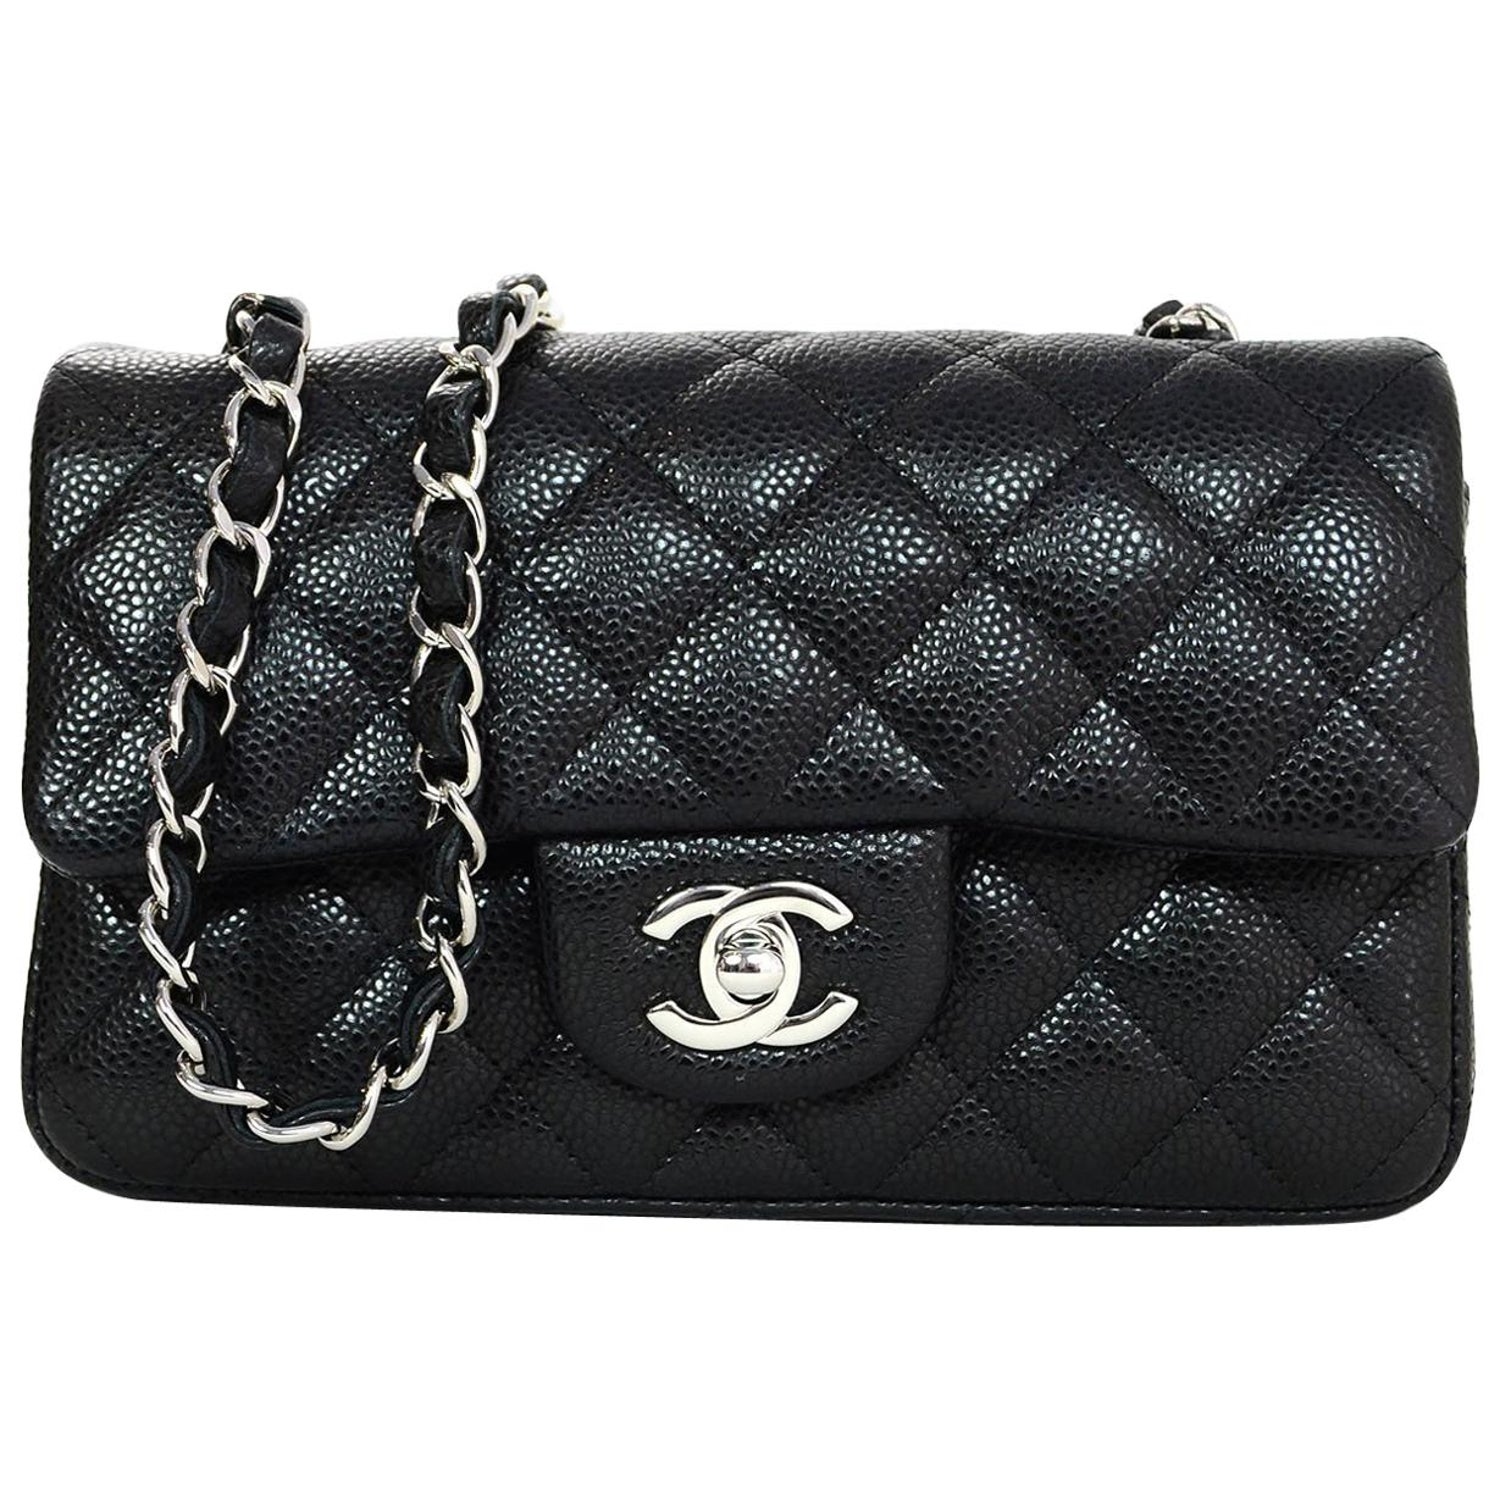 0a11cce4fcc0 Chanel 2018 Black Quilted Caviar Rectangular Mini Flap Crossbody Bag w.  Receipt For Sale at 1stdibs